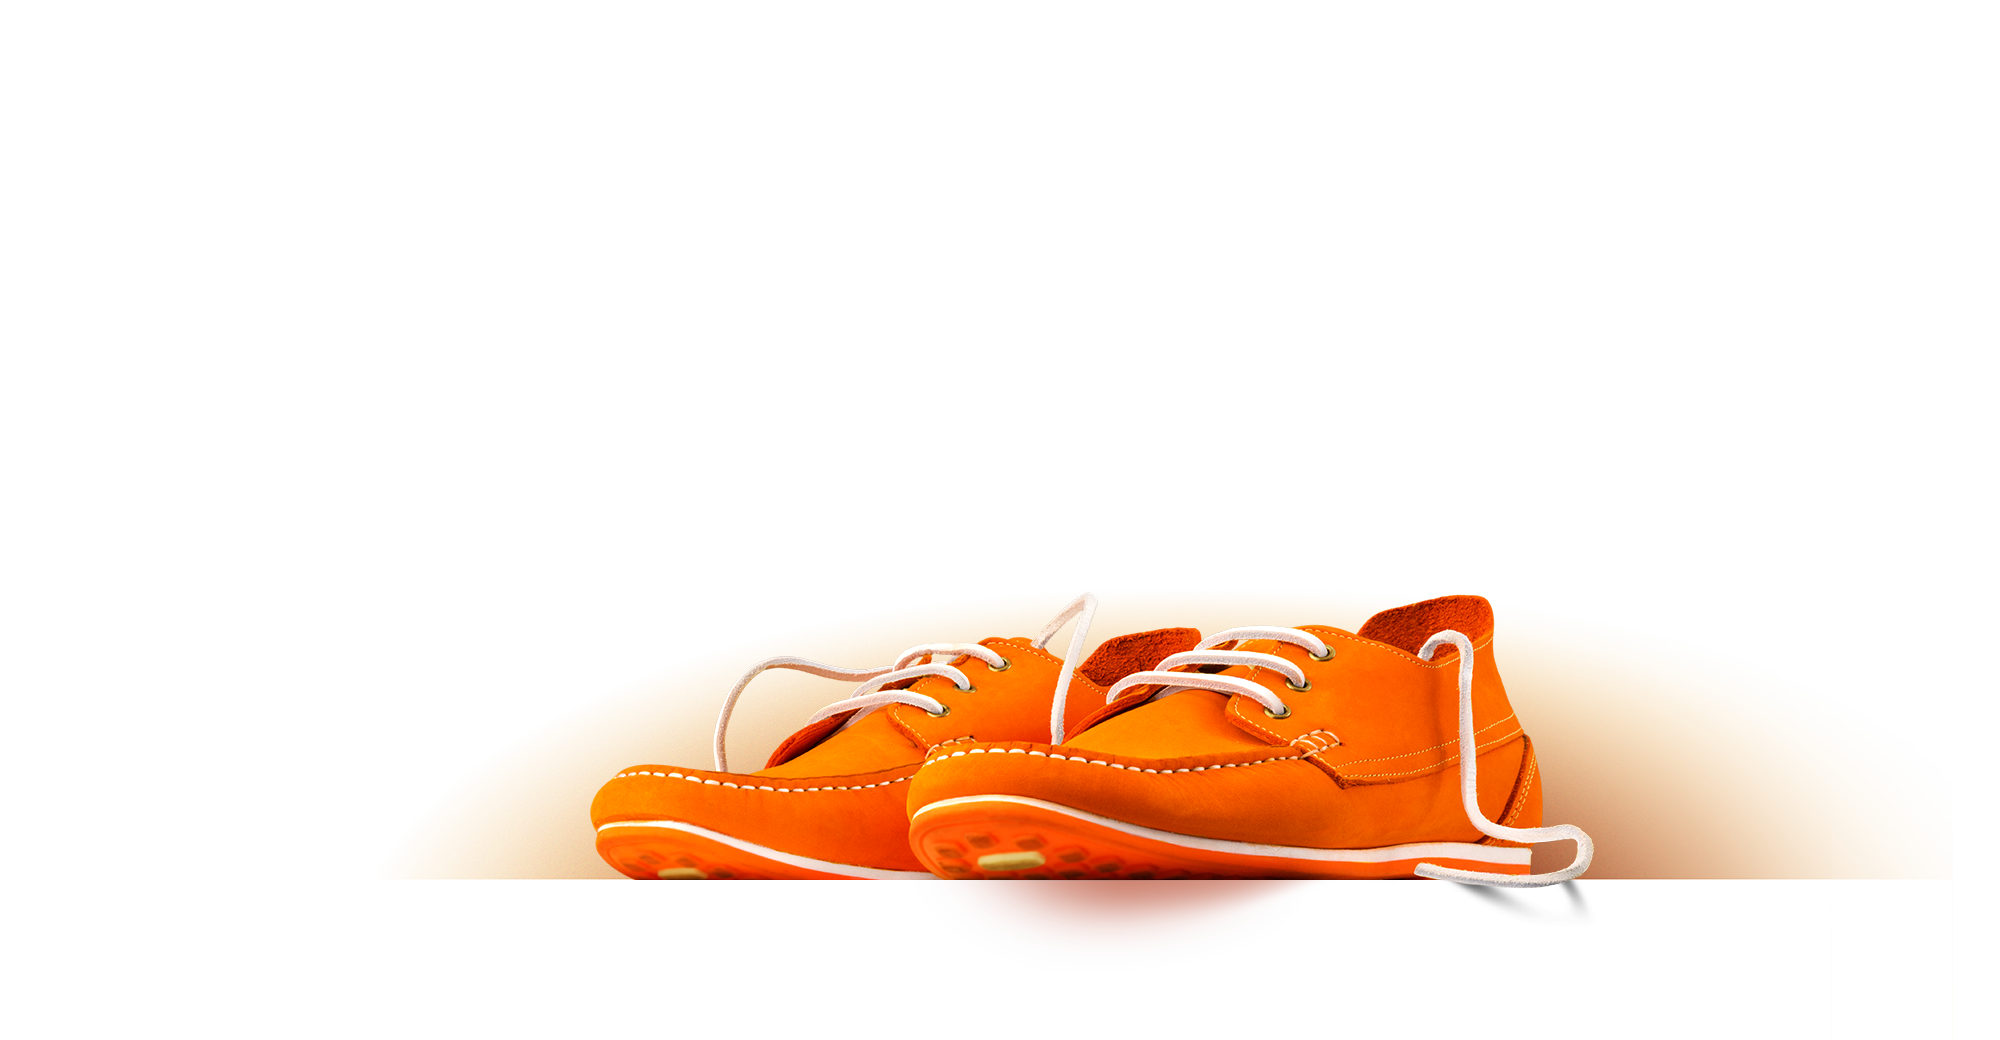 Orange shoes representing brand definition.